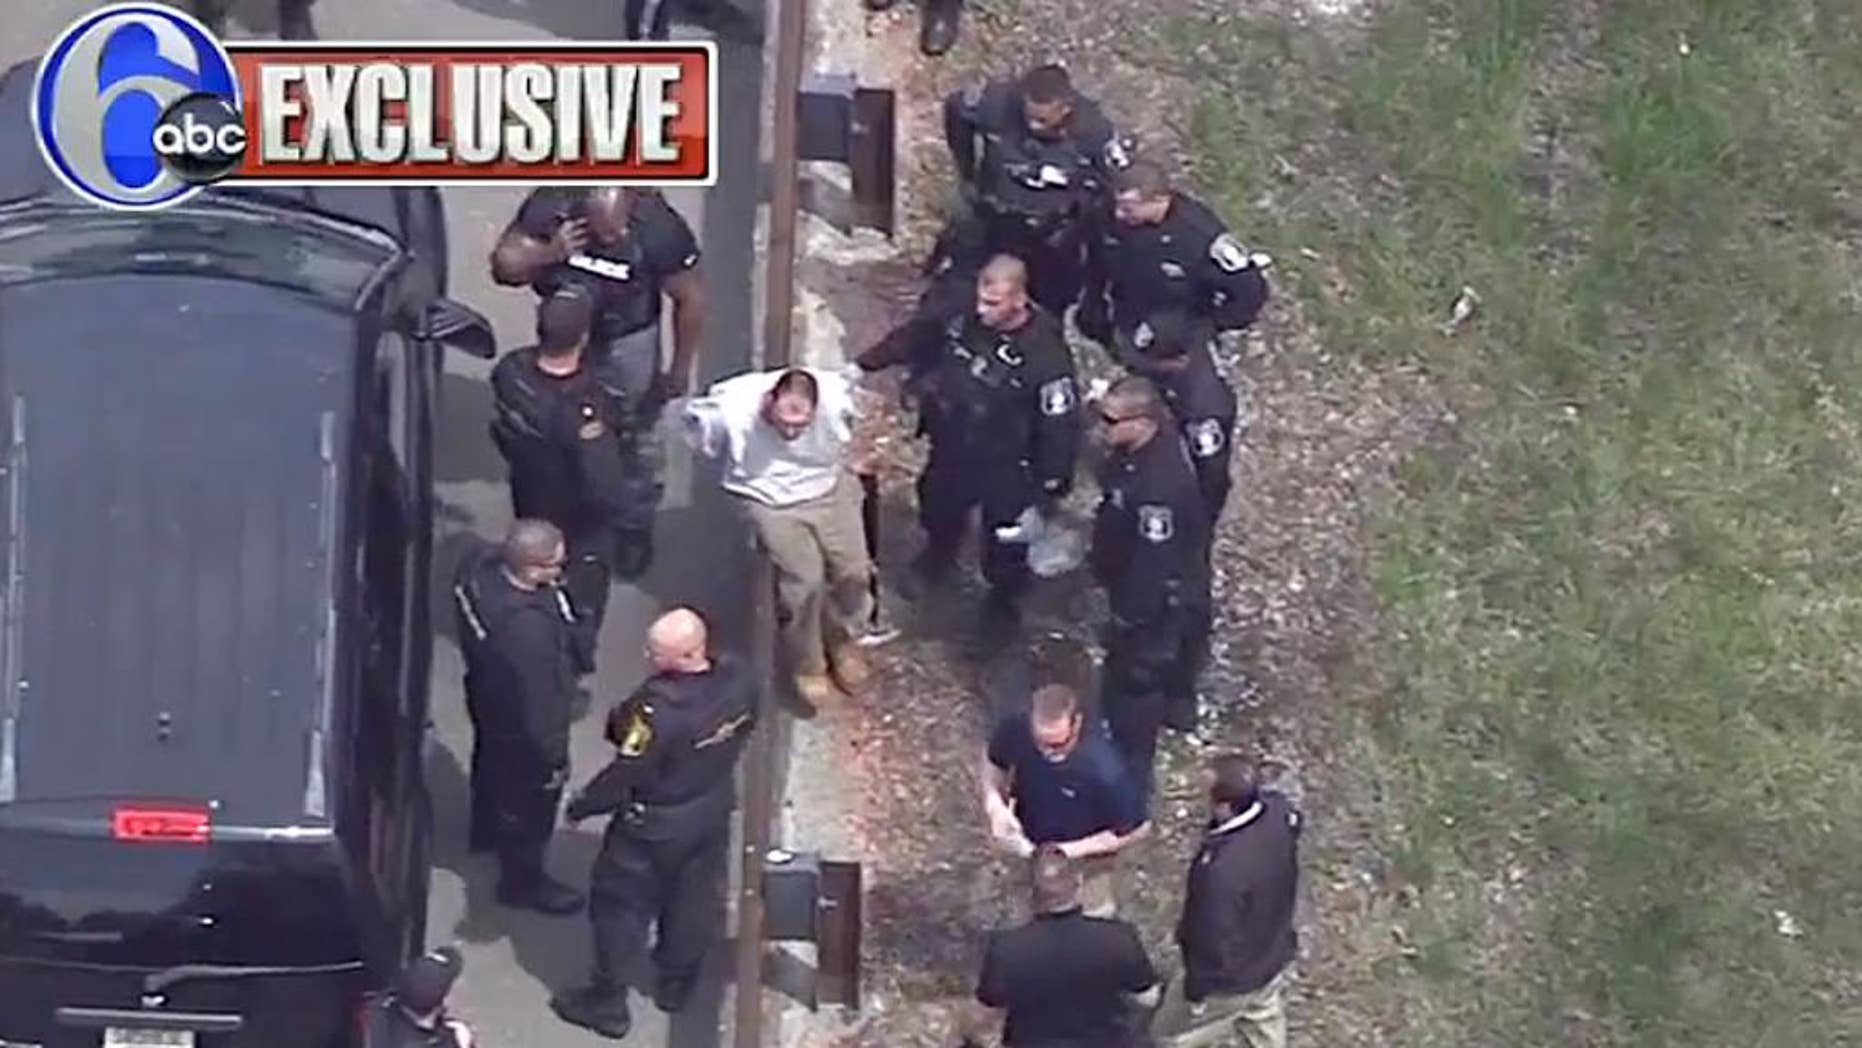 In this frame grab taken from video, Arthur Buckel, center, sits on a guardrail surrounded by police officers after being taken into custody near Double Trouble State Park, Monday, May 9, 2016, in Lacey Township, N.J. The minimum security prison inmate who escaped last week once served time for manslaughter for killing a baby and had been behind bars on assault, drug possession and burglary charges. (AP Photo/ WPVI-TV)